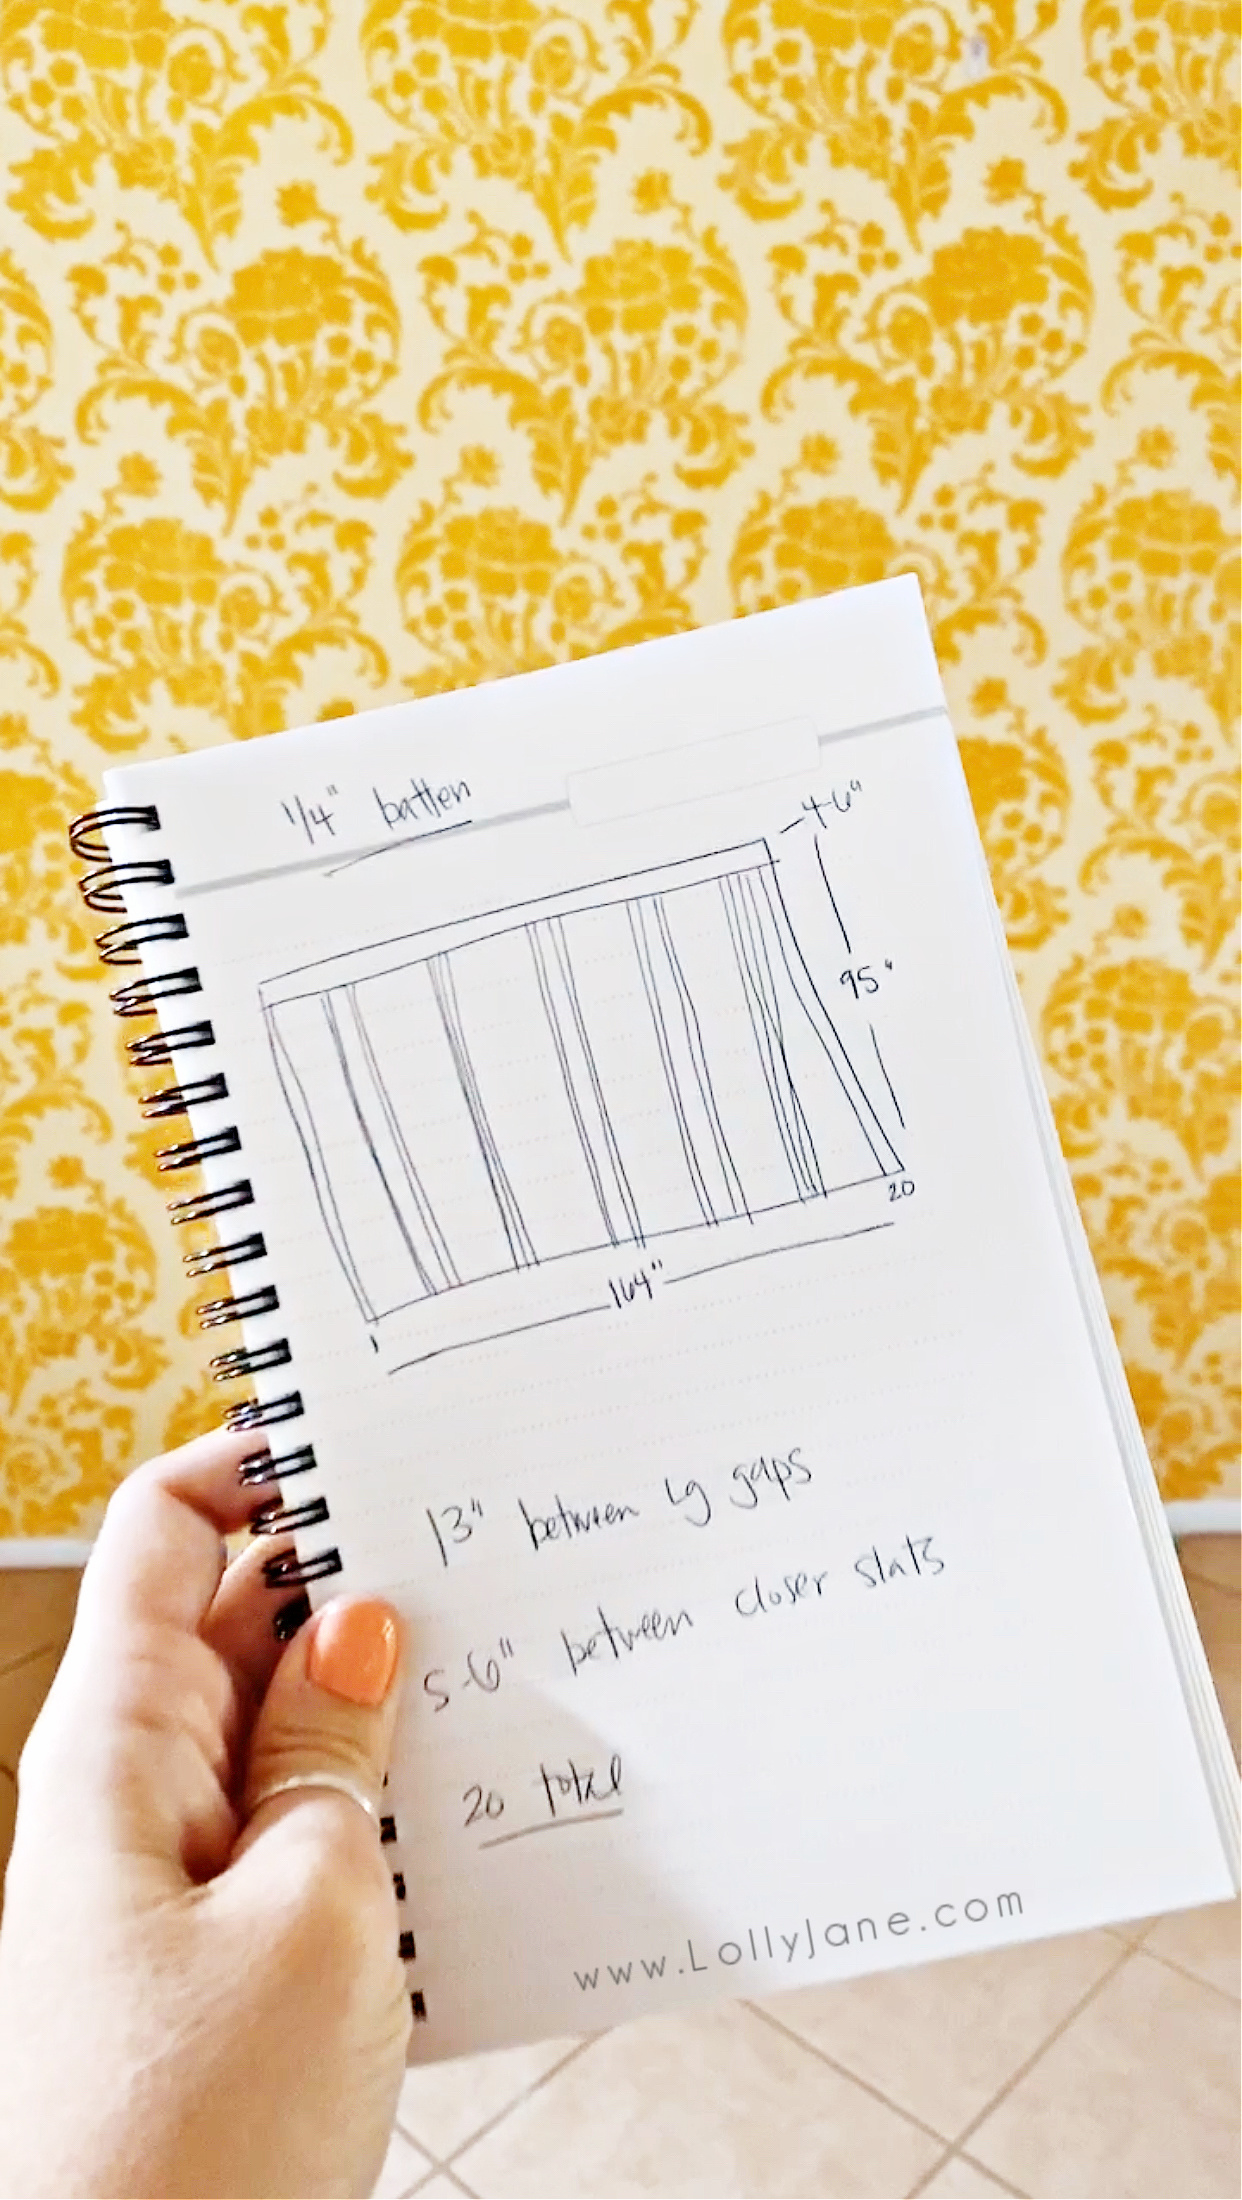 How to measure double batten wall treatment. Make this trendy wall treatment to create a cozy boho farmhouse style dining room. #bohostylediningroom #navydiningroom #doublebattenwalltreatment #doublebatten #howtomeasuredoublebatten